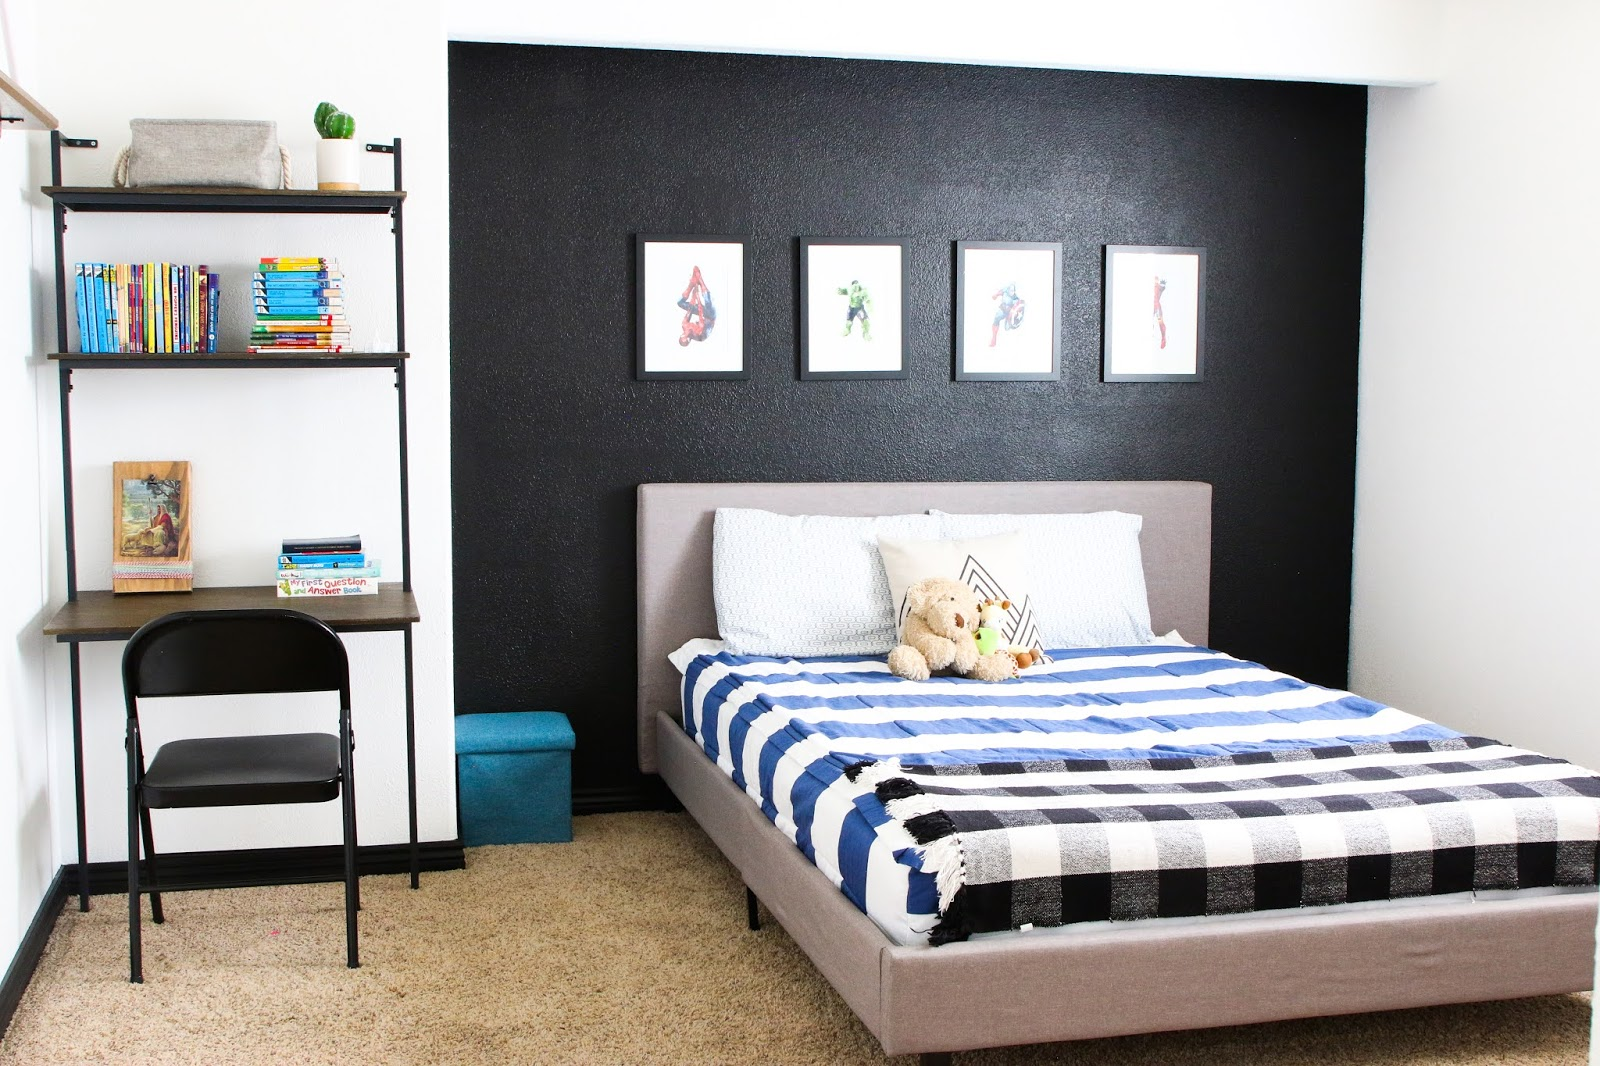 Bedroom ideas for boys - blue and black accessories